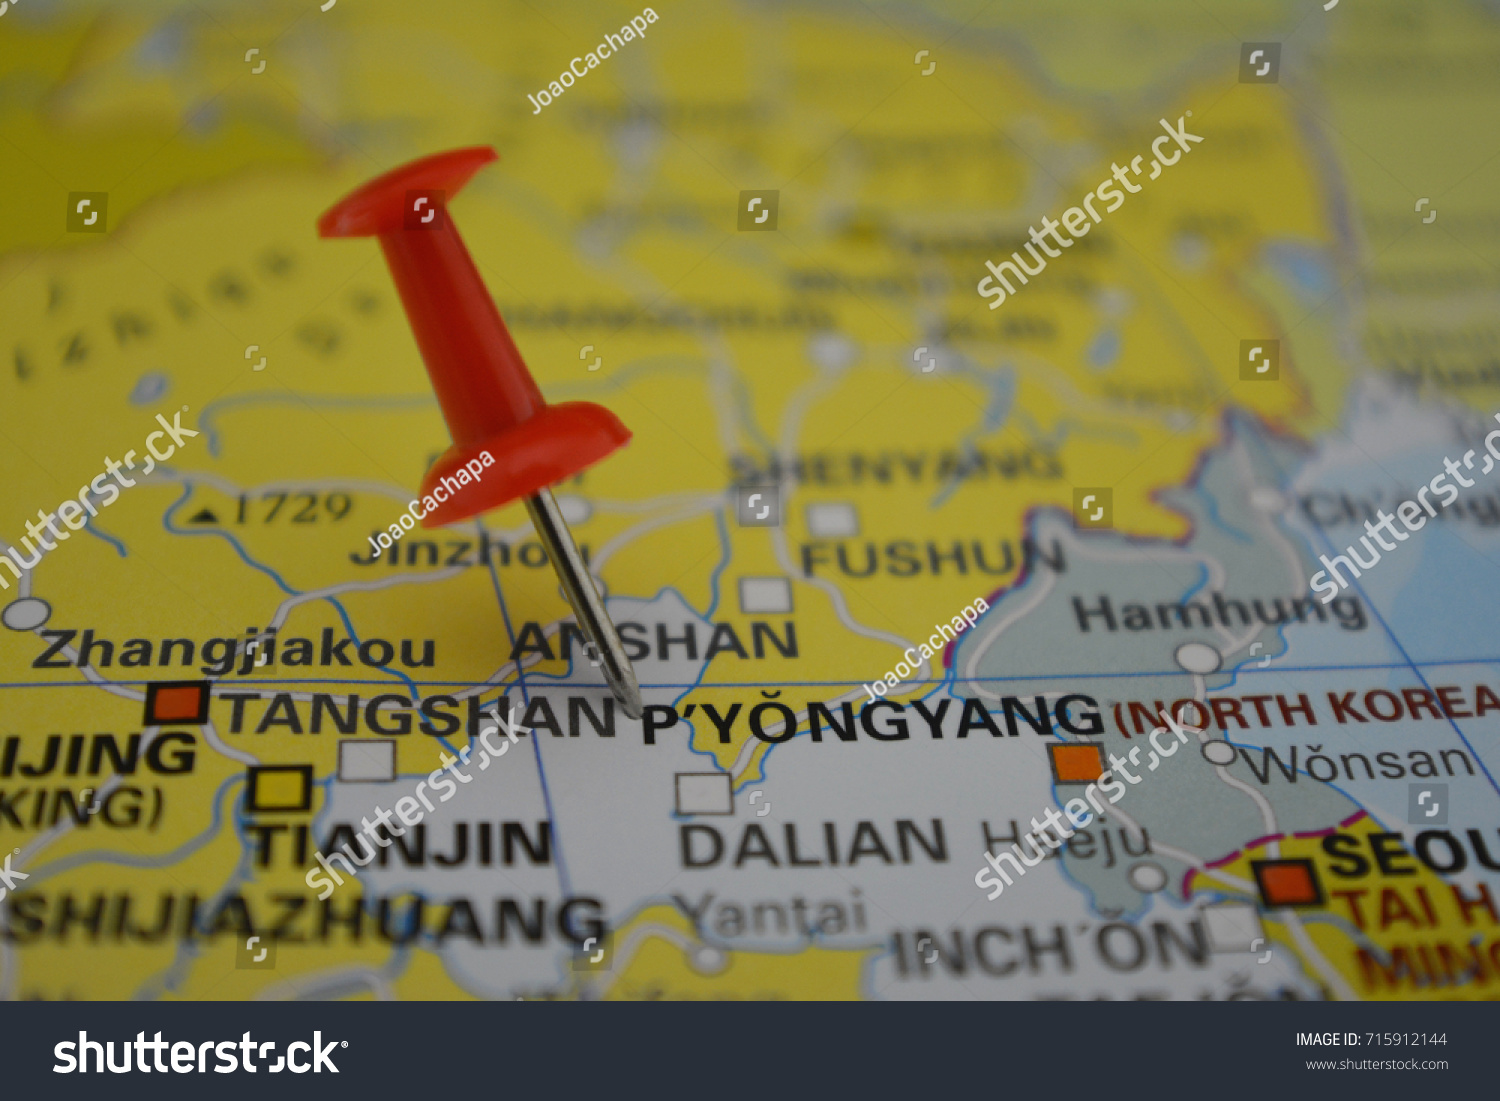 Pin Pyongyang On Map City North Stock Photo (Edit Now) 715912144 on map of aruba airports, map of france airports, map of haiti airports, map of israel airports, map of taiwan airports, map of lithuania airports, map of south africa airports, map of iran airports, map of swaziland airports, map of bolivia airports, map of indonesia airports, map of myanmar airports, map of kazakhstan airports, map of the united states airports, map of japan airports, map of united kingdom airports, map of thailand airports, map of zimbabwe airports, map of colombia airports, map of ireland airports,